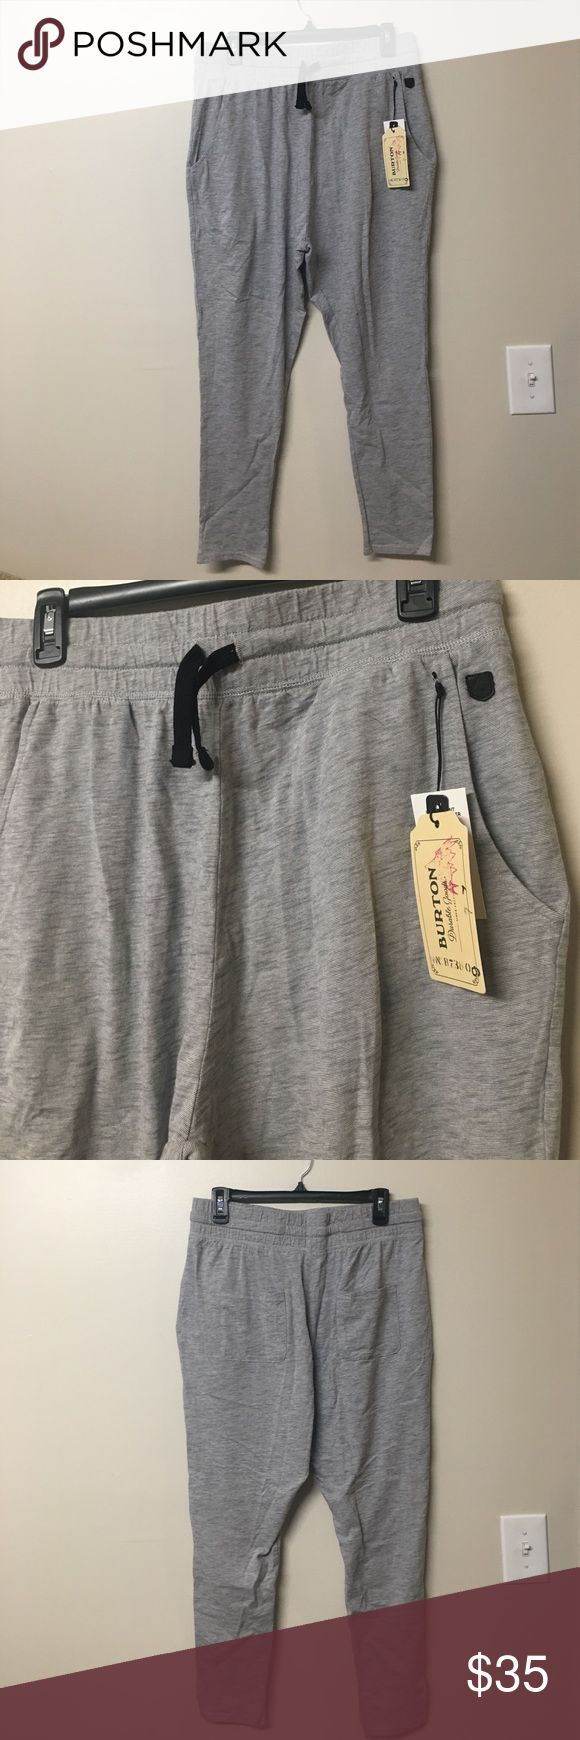 🏷NWT Women's Burton Joggers Brand new with tags AND original packaging!!!   Purchased for $59 Retail. Simply just never wore them. Have only been taken out of the packaging for pictures and to be tried on once. Nike for exposer   They are stretchy, light weight and soft. A grey and white color blend to create a nice heather grey.   4 pockets, black logo on front left. Pull strings to tighten Length - 36.5 inches Waist - 16 inches (elastic can obviously stretch wider, this is the measurement…